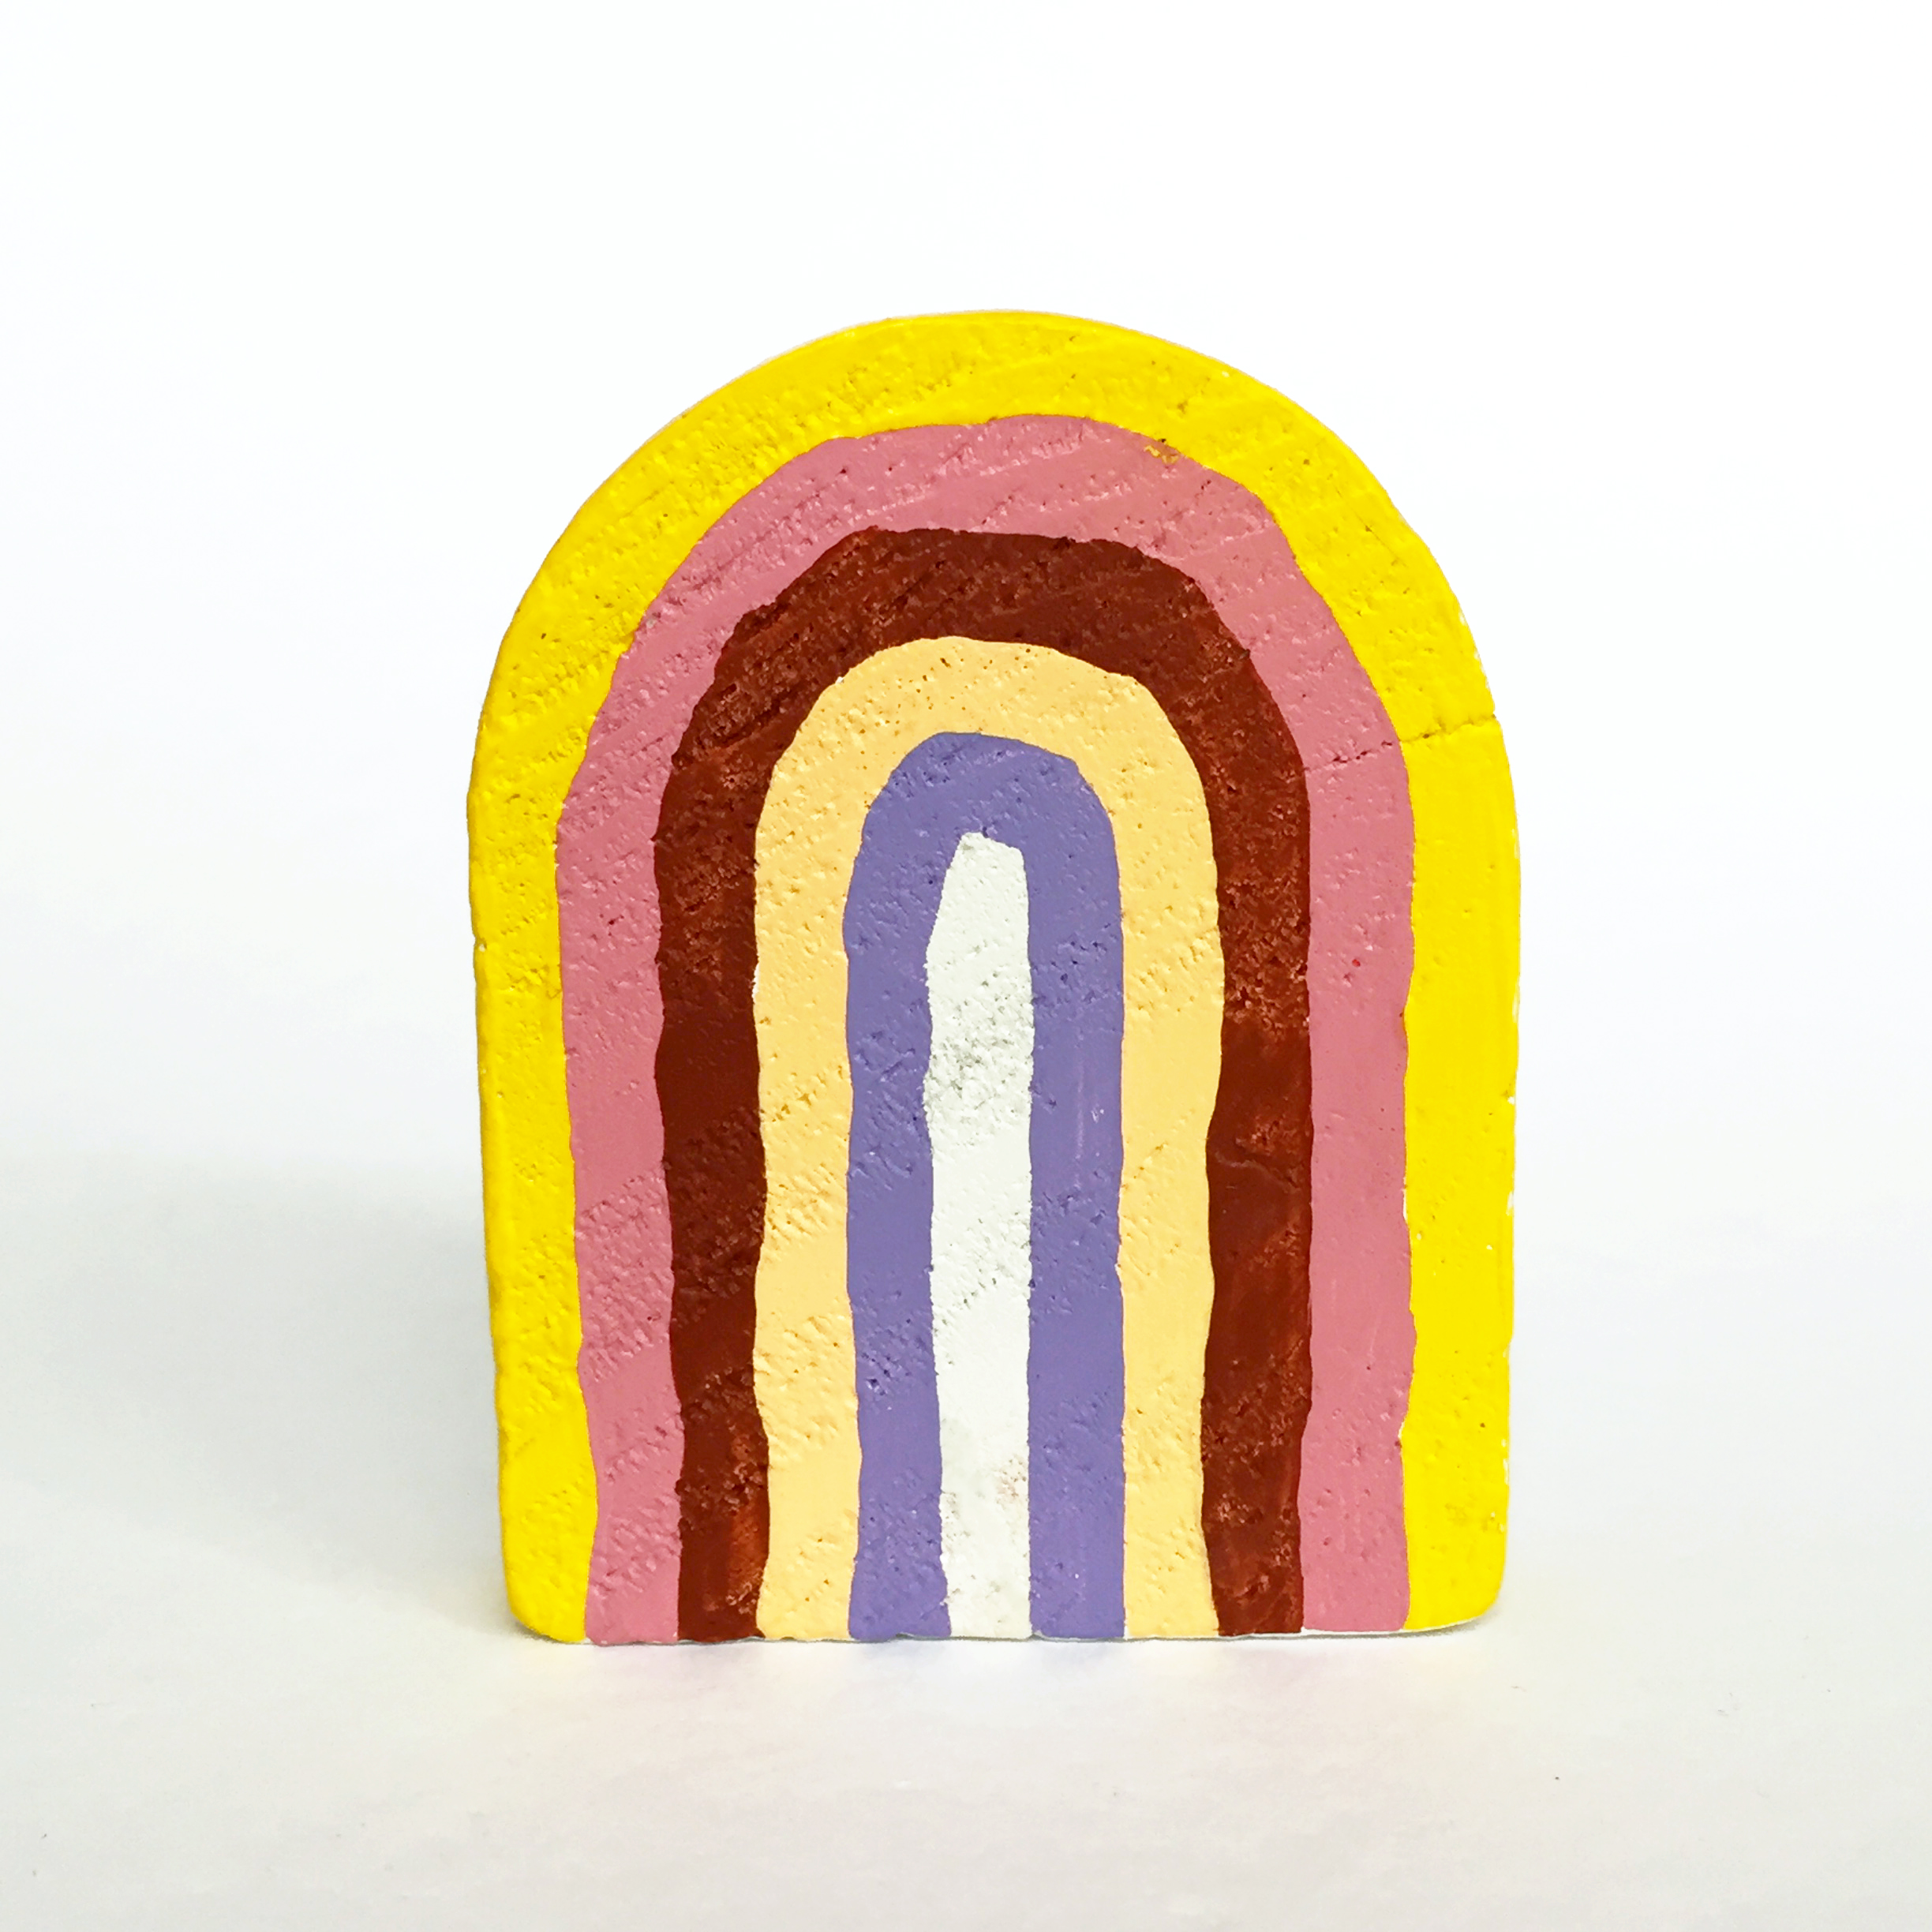 Rainbow #6, 2019, small object, found wood shape, acrylic paint, 65mm x 50mm